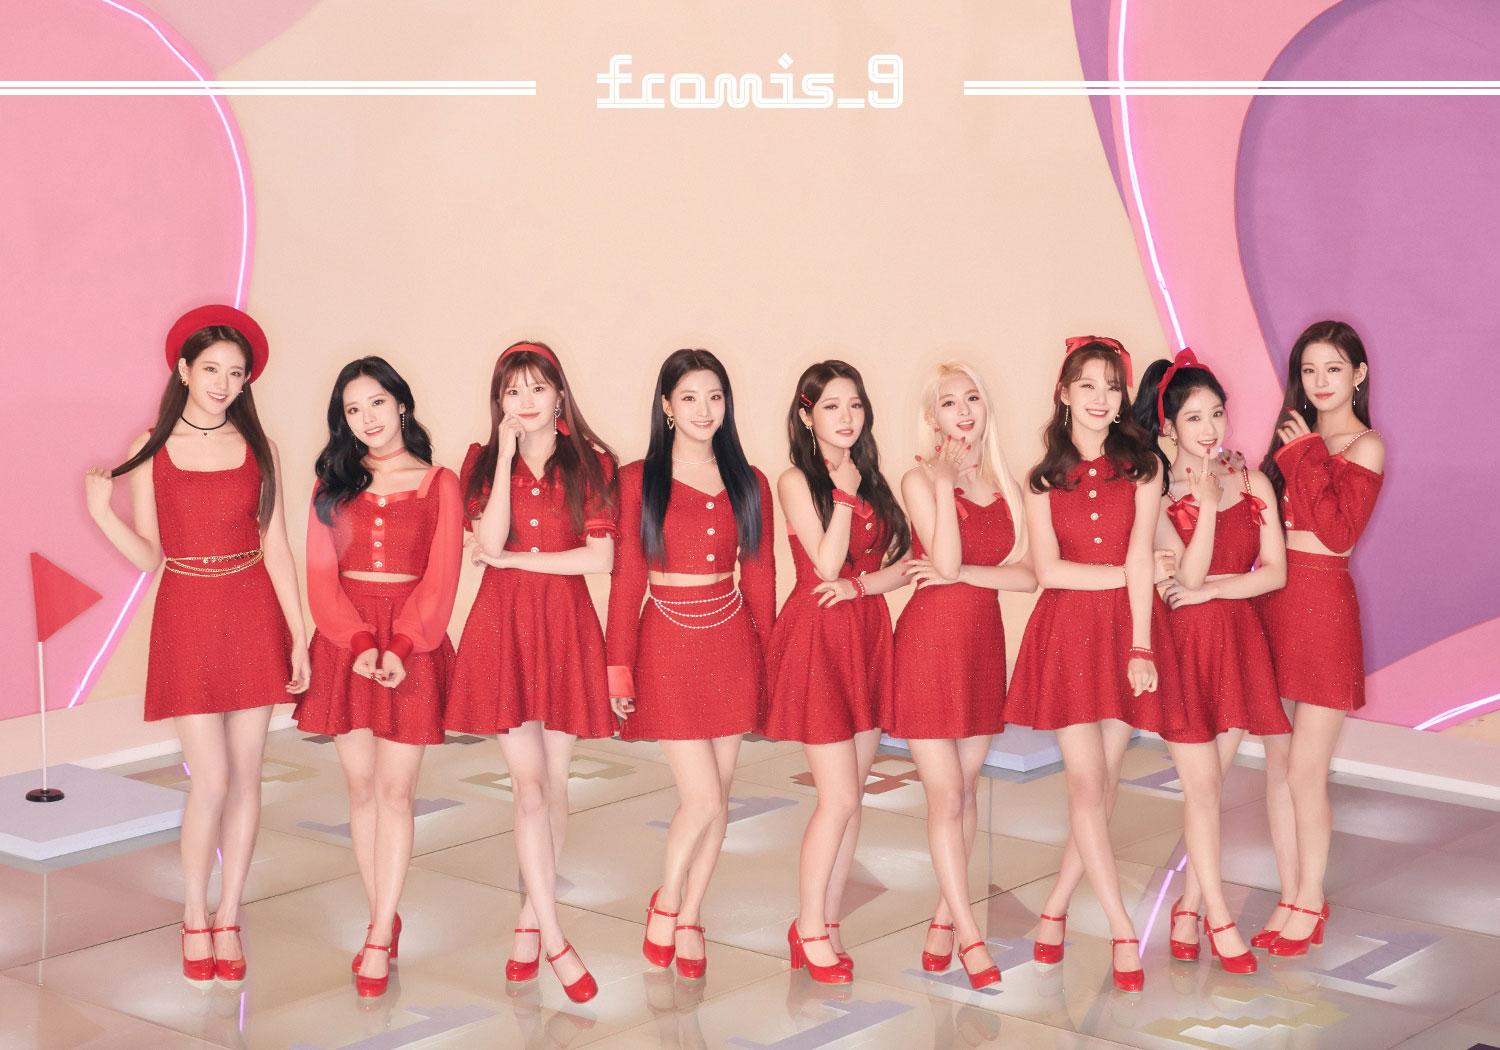 """fromis_9 to release their Japanese pre-debut single """"Love Bomb"""" on 13th Mar - Music - OneHallyu"""